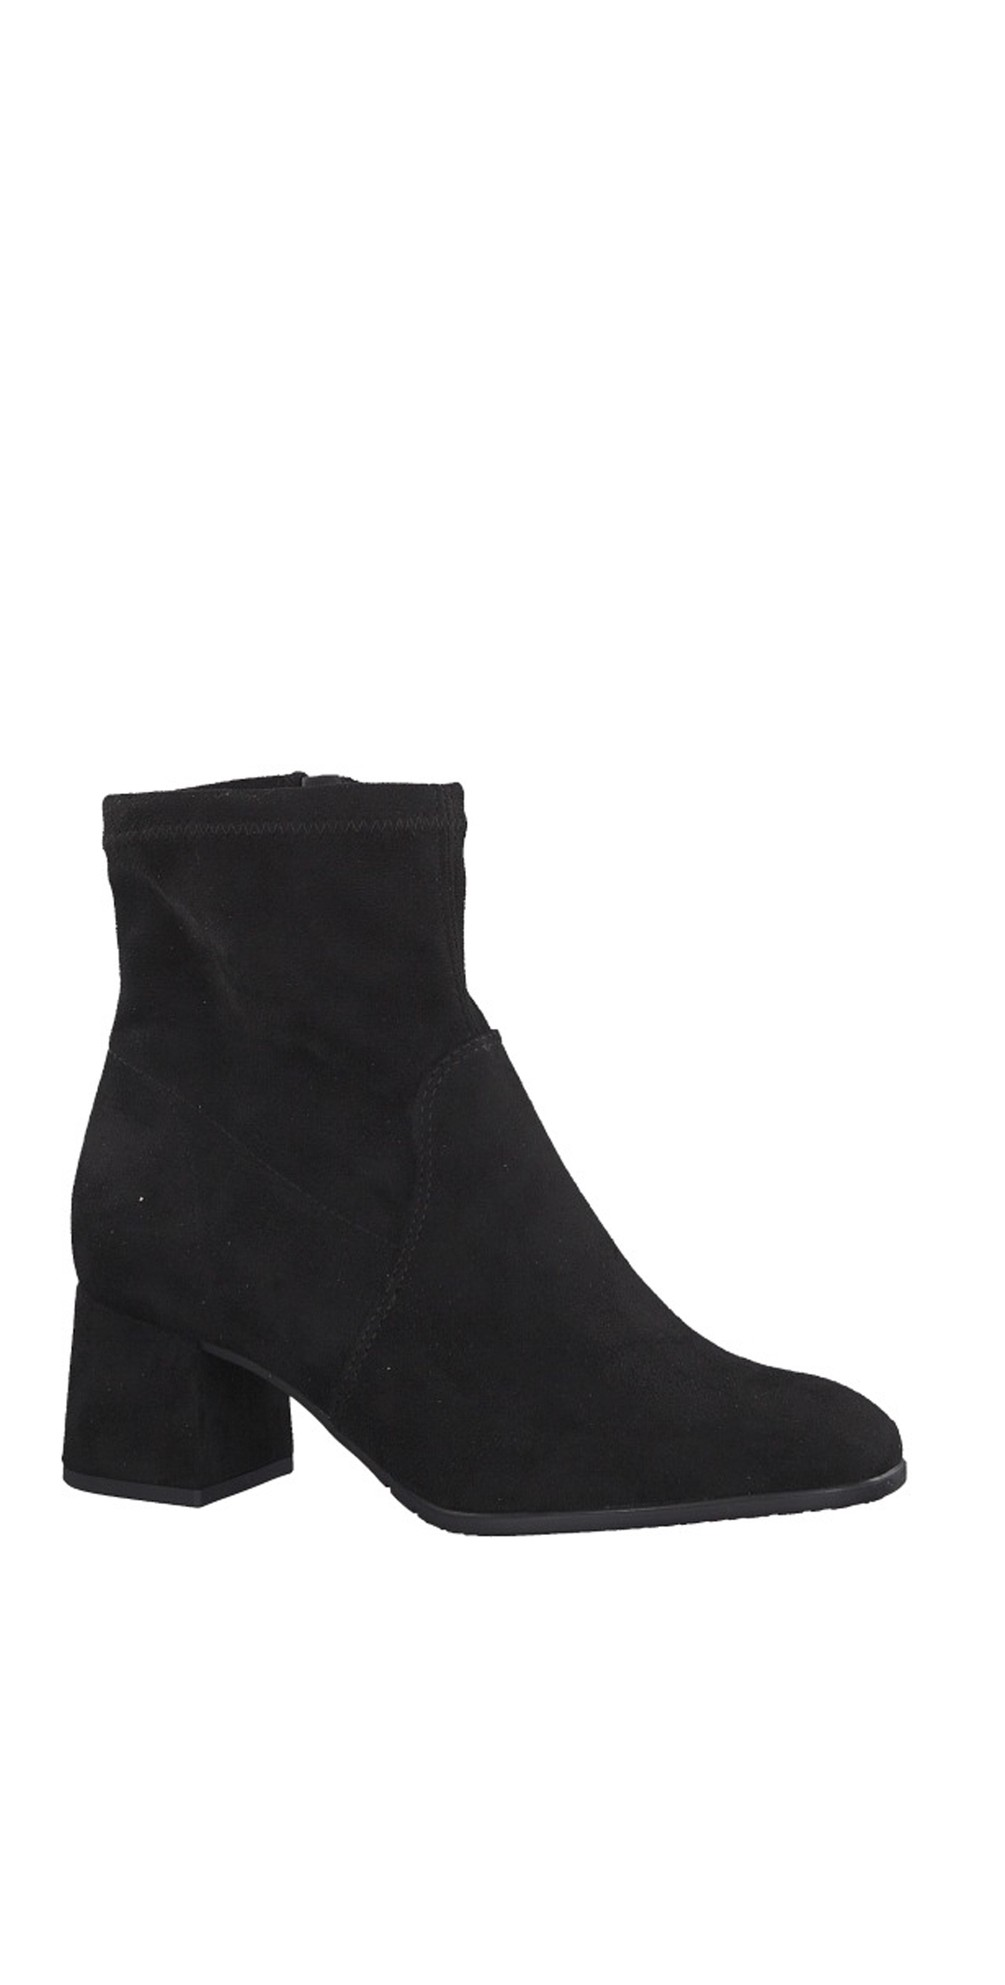 Black Nadda Stretch Ankle Boot Block Heel